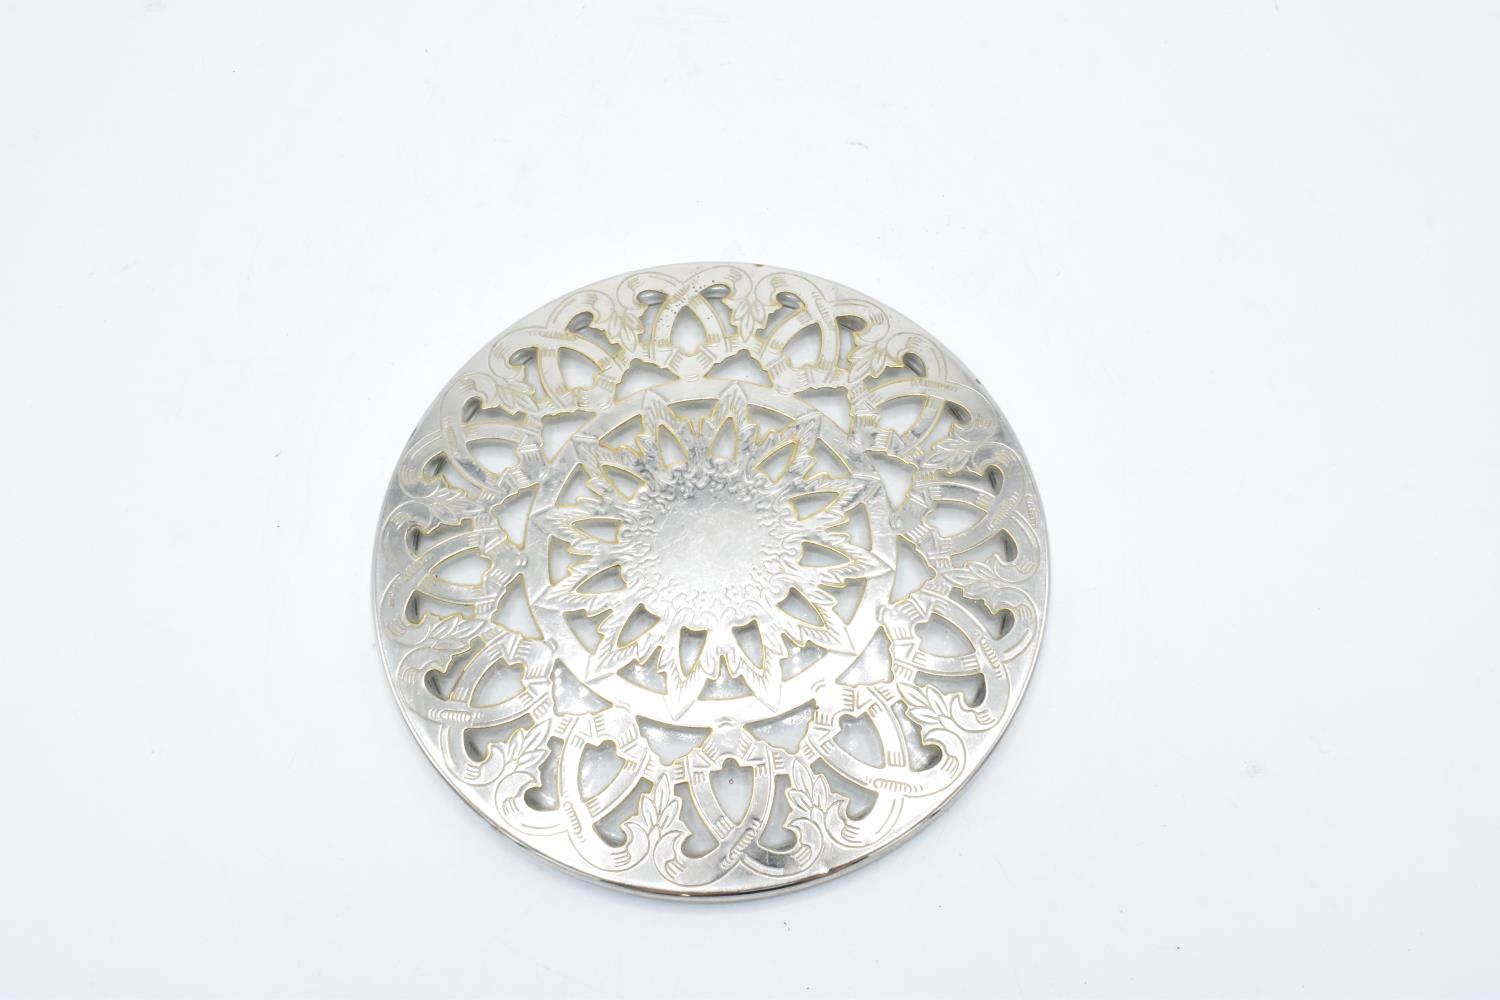 Silver plated and glass teapot stand/ placemat. 16cm diameter. In good condition with no obvious - Image 2 of 3